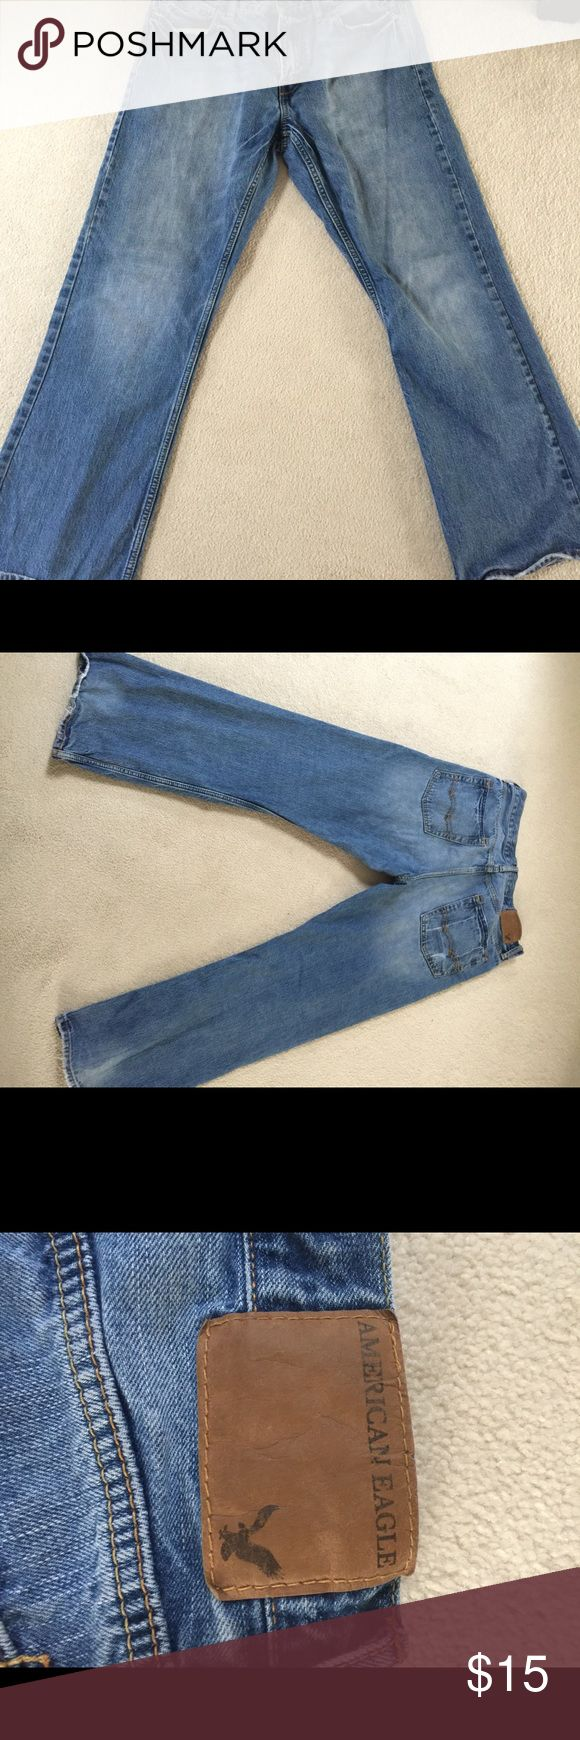 Men's American Eagle Jeans American Eagle Bootcut Men's Jeans 33x32 in great shape only worn a handful of times American Eagle Outfitters Jeans Bootcut